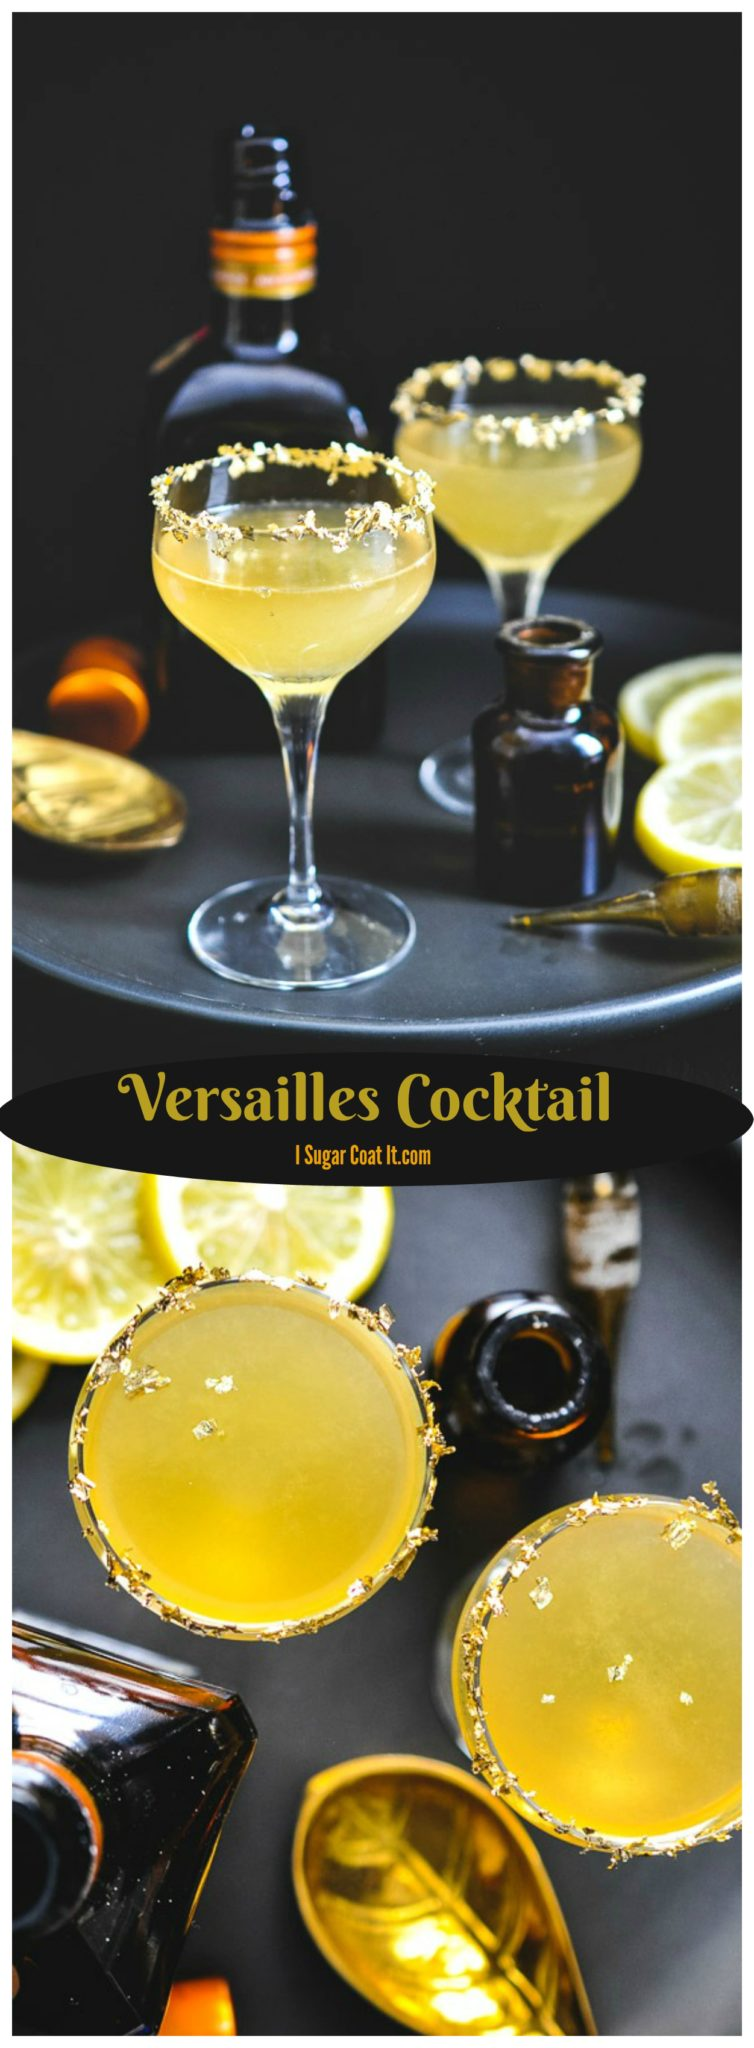 Crisp and tart with a touch of bling, the Versailles Cocktail is a perfect way to bling in the new year!